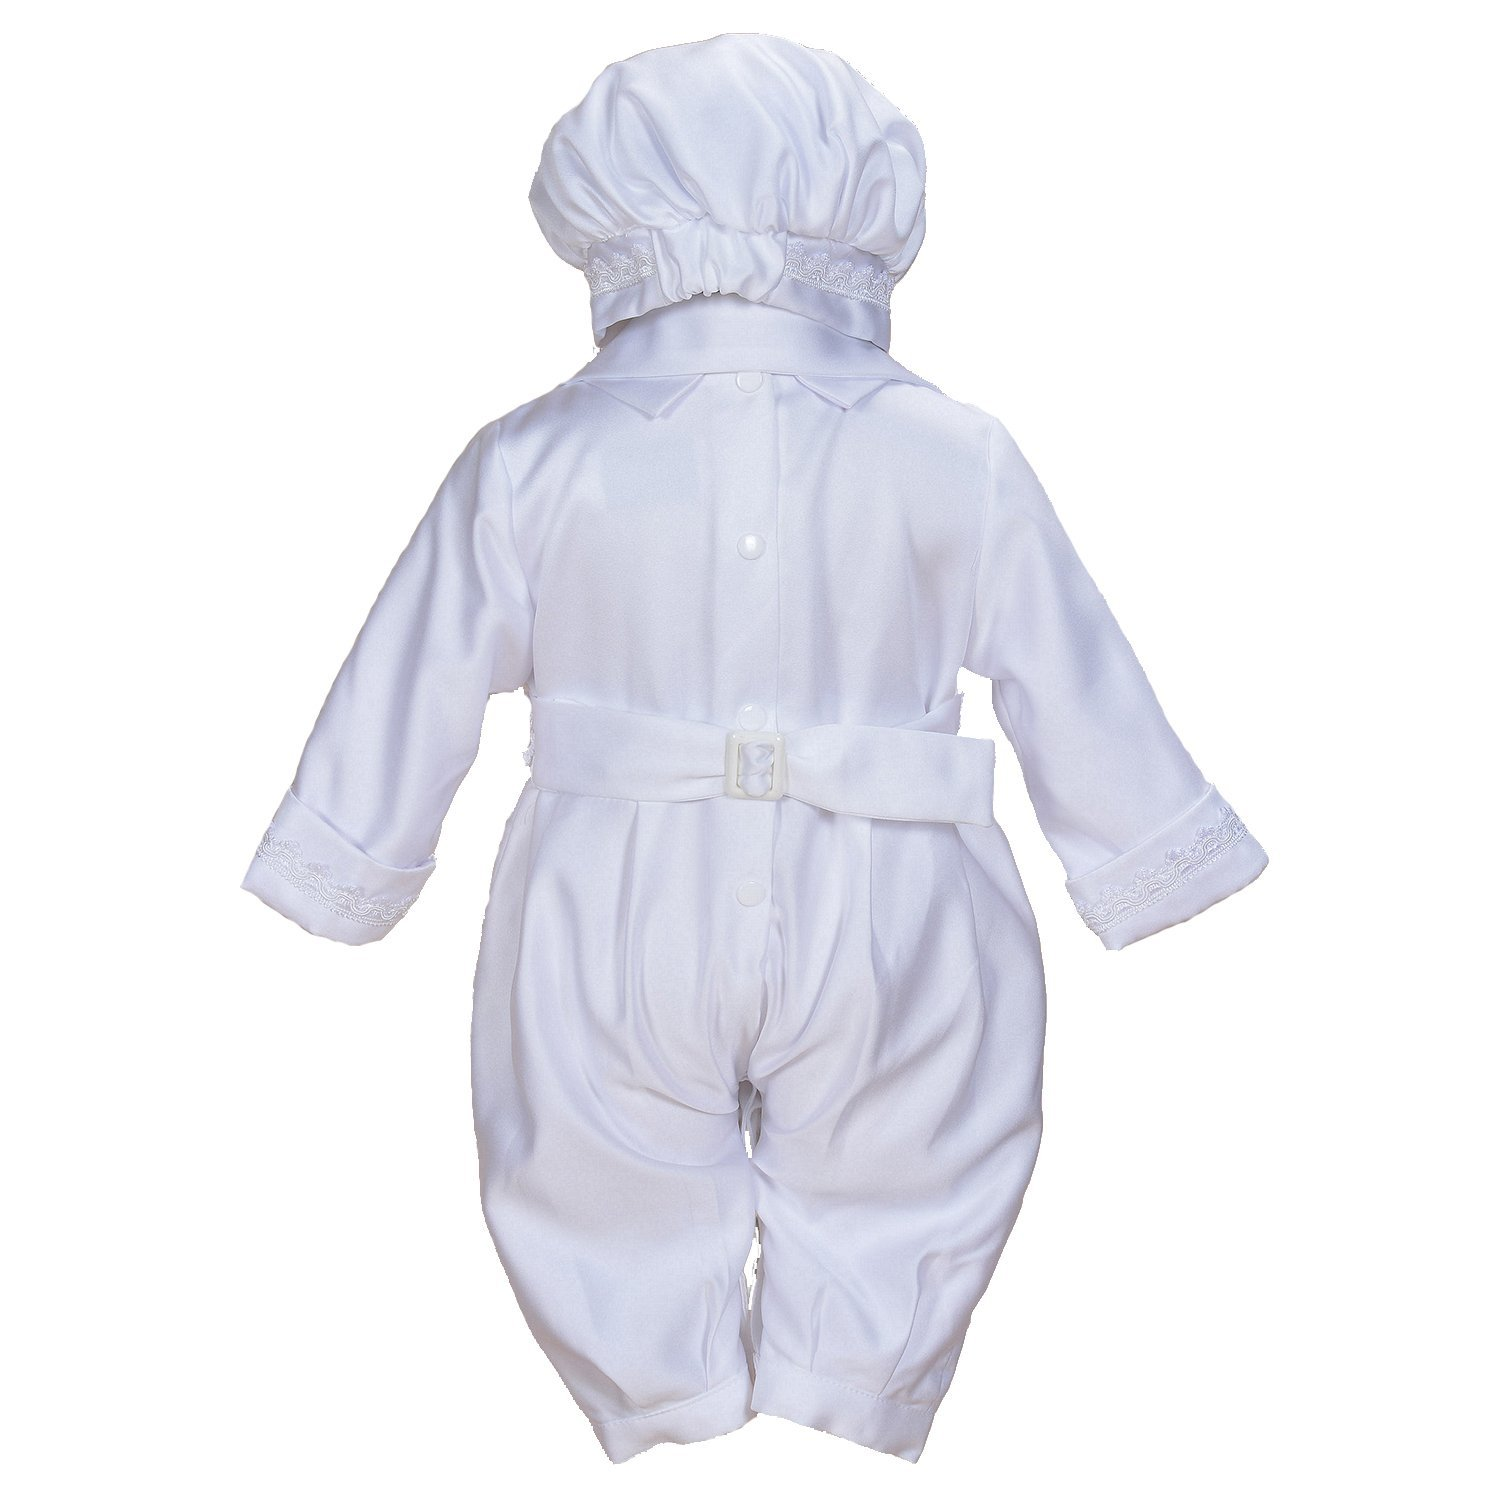 830542419 Cinda Boys Satin Christening 3 Piece Set with Hat and Scarf - cinda ...